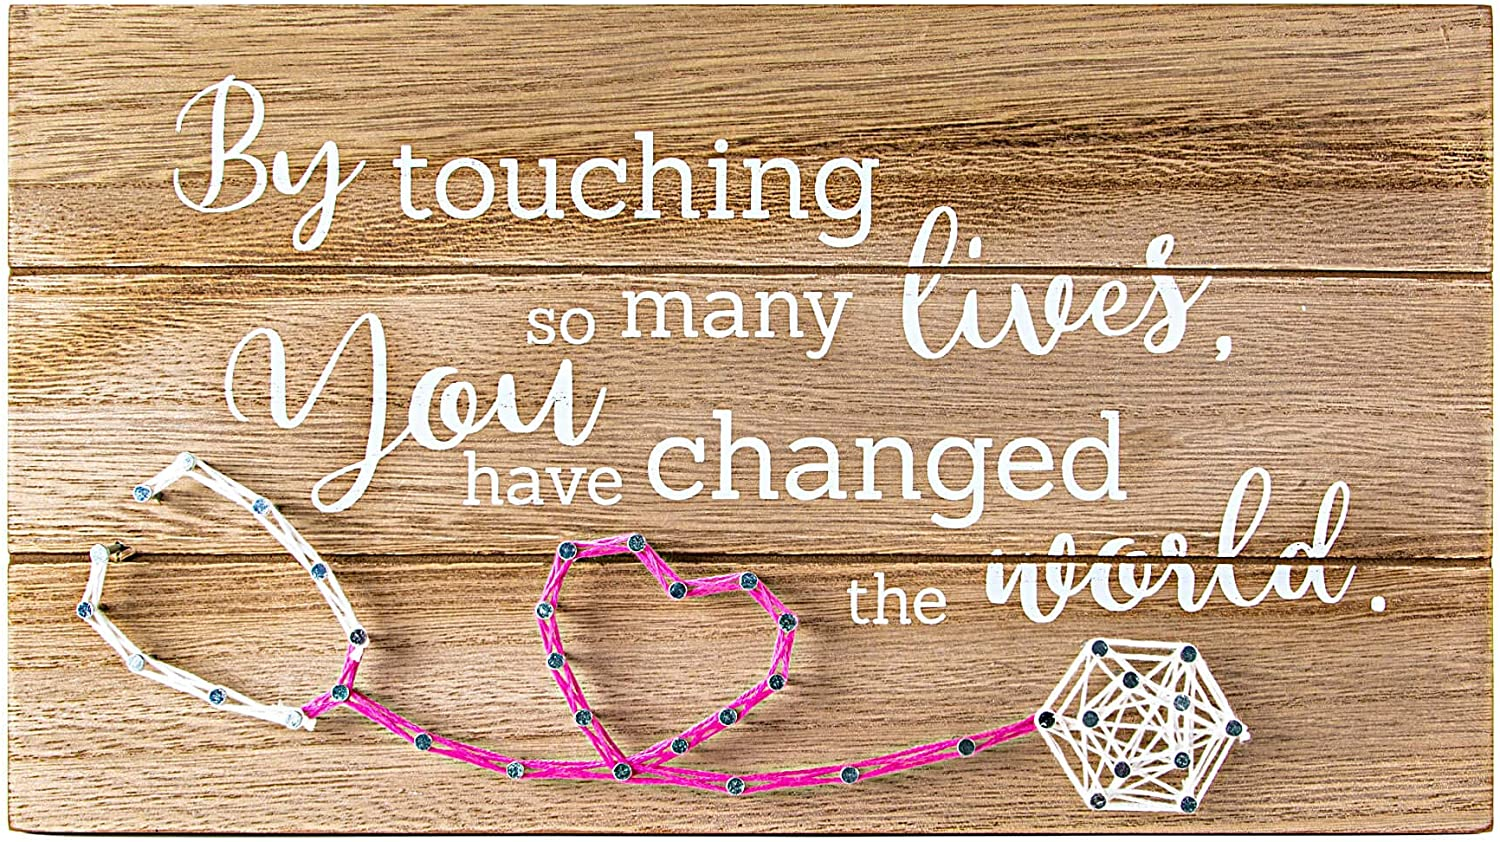 VILIGHT Nurse Retirement Gifts for Women - Thank You Appreciation and Retiring Gift Sign - by Touching So Many Lives You Have Changed The World - Handmade 3D String Art 12x6.6 Inches